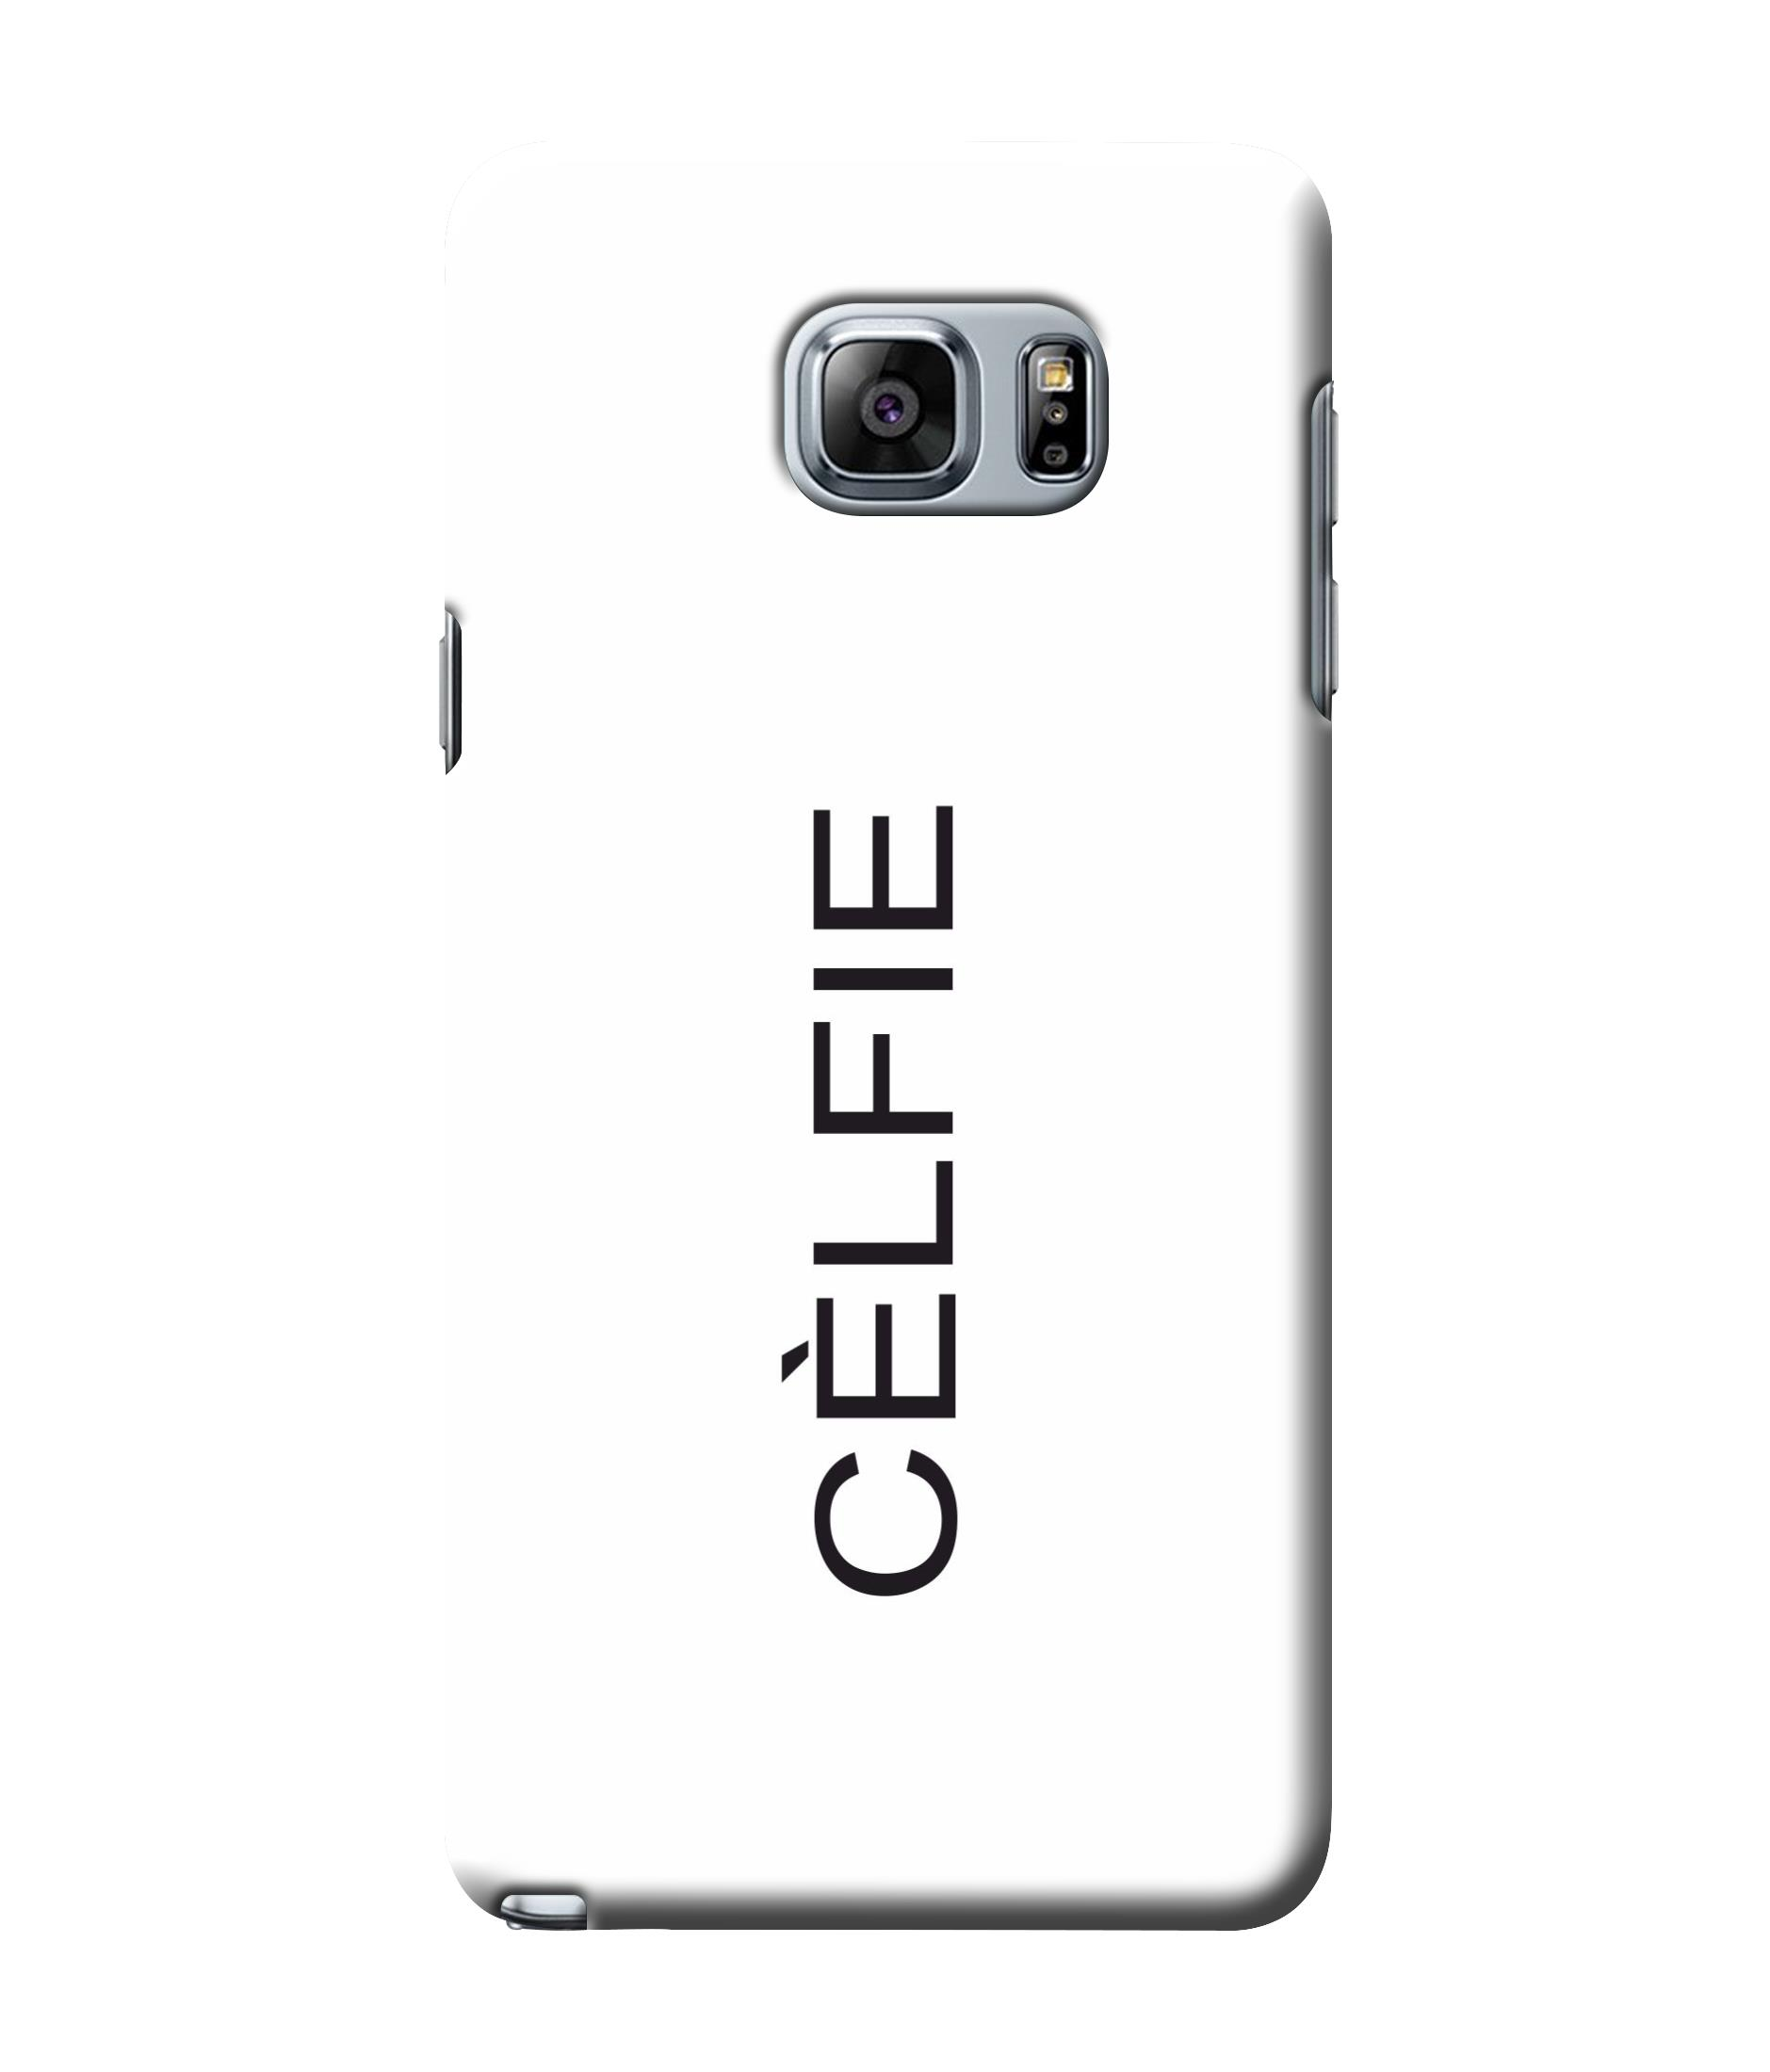 caseophile2 Samsung Galaxy Note 5 Celfie White Mobile Case